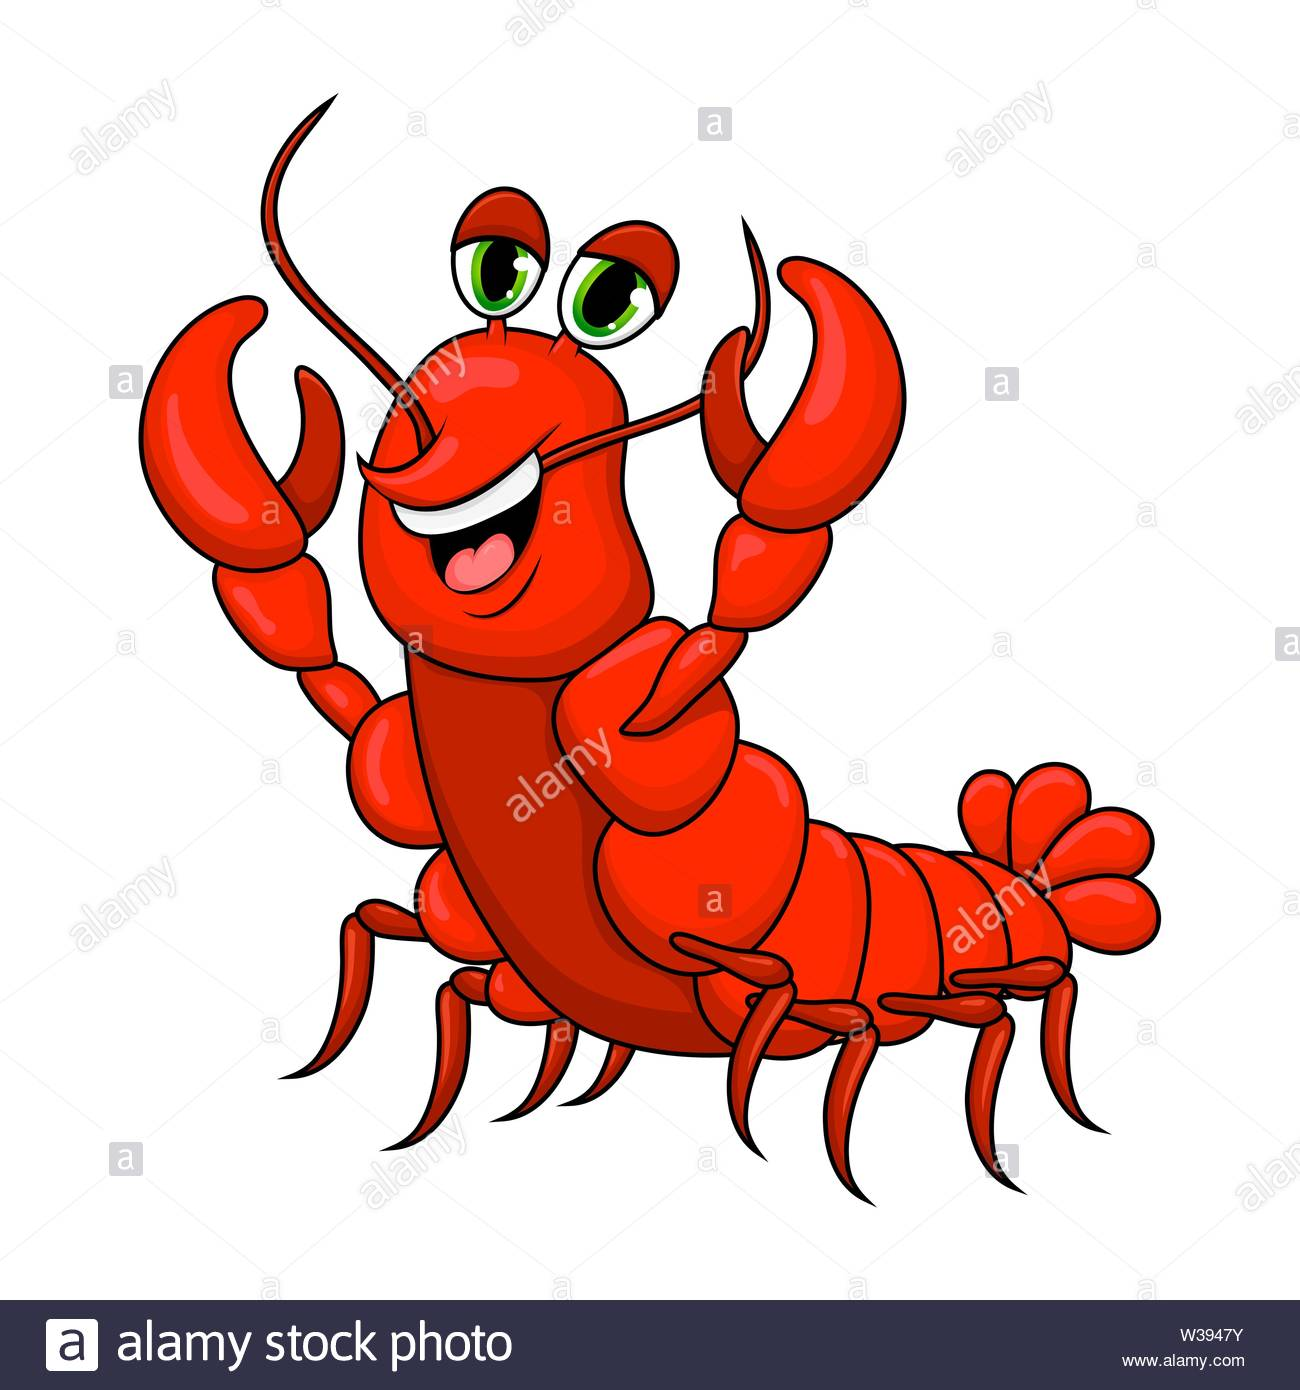 crawfish cartoon cute character illustration isolated on white 1300x1390